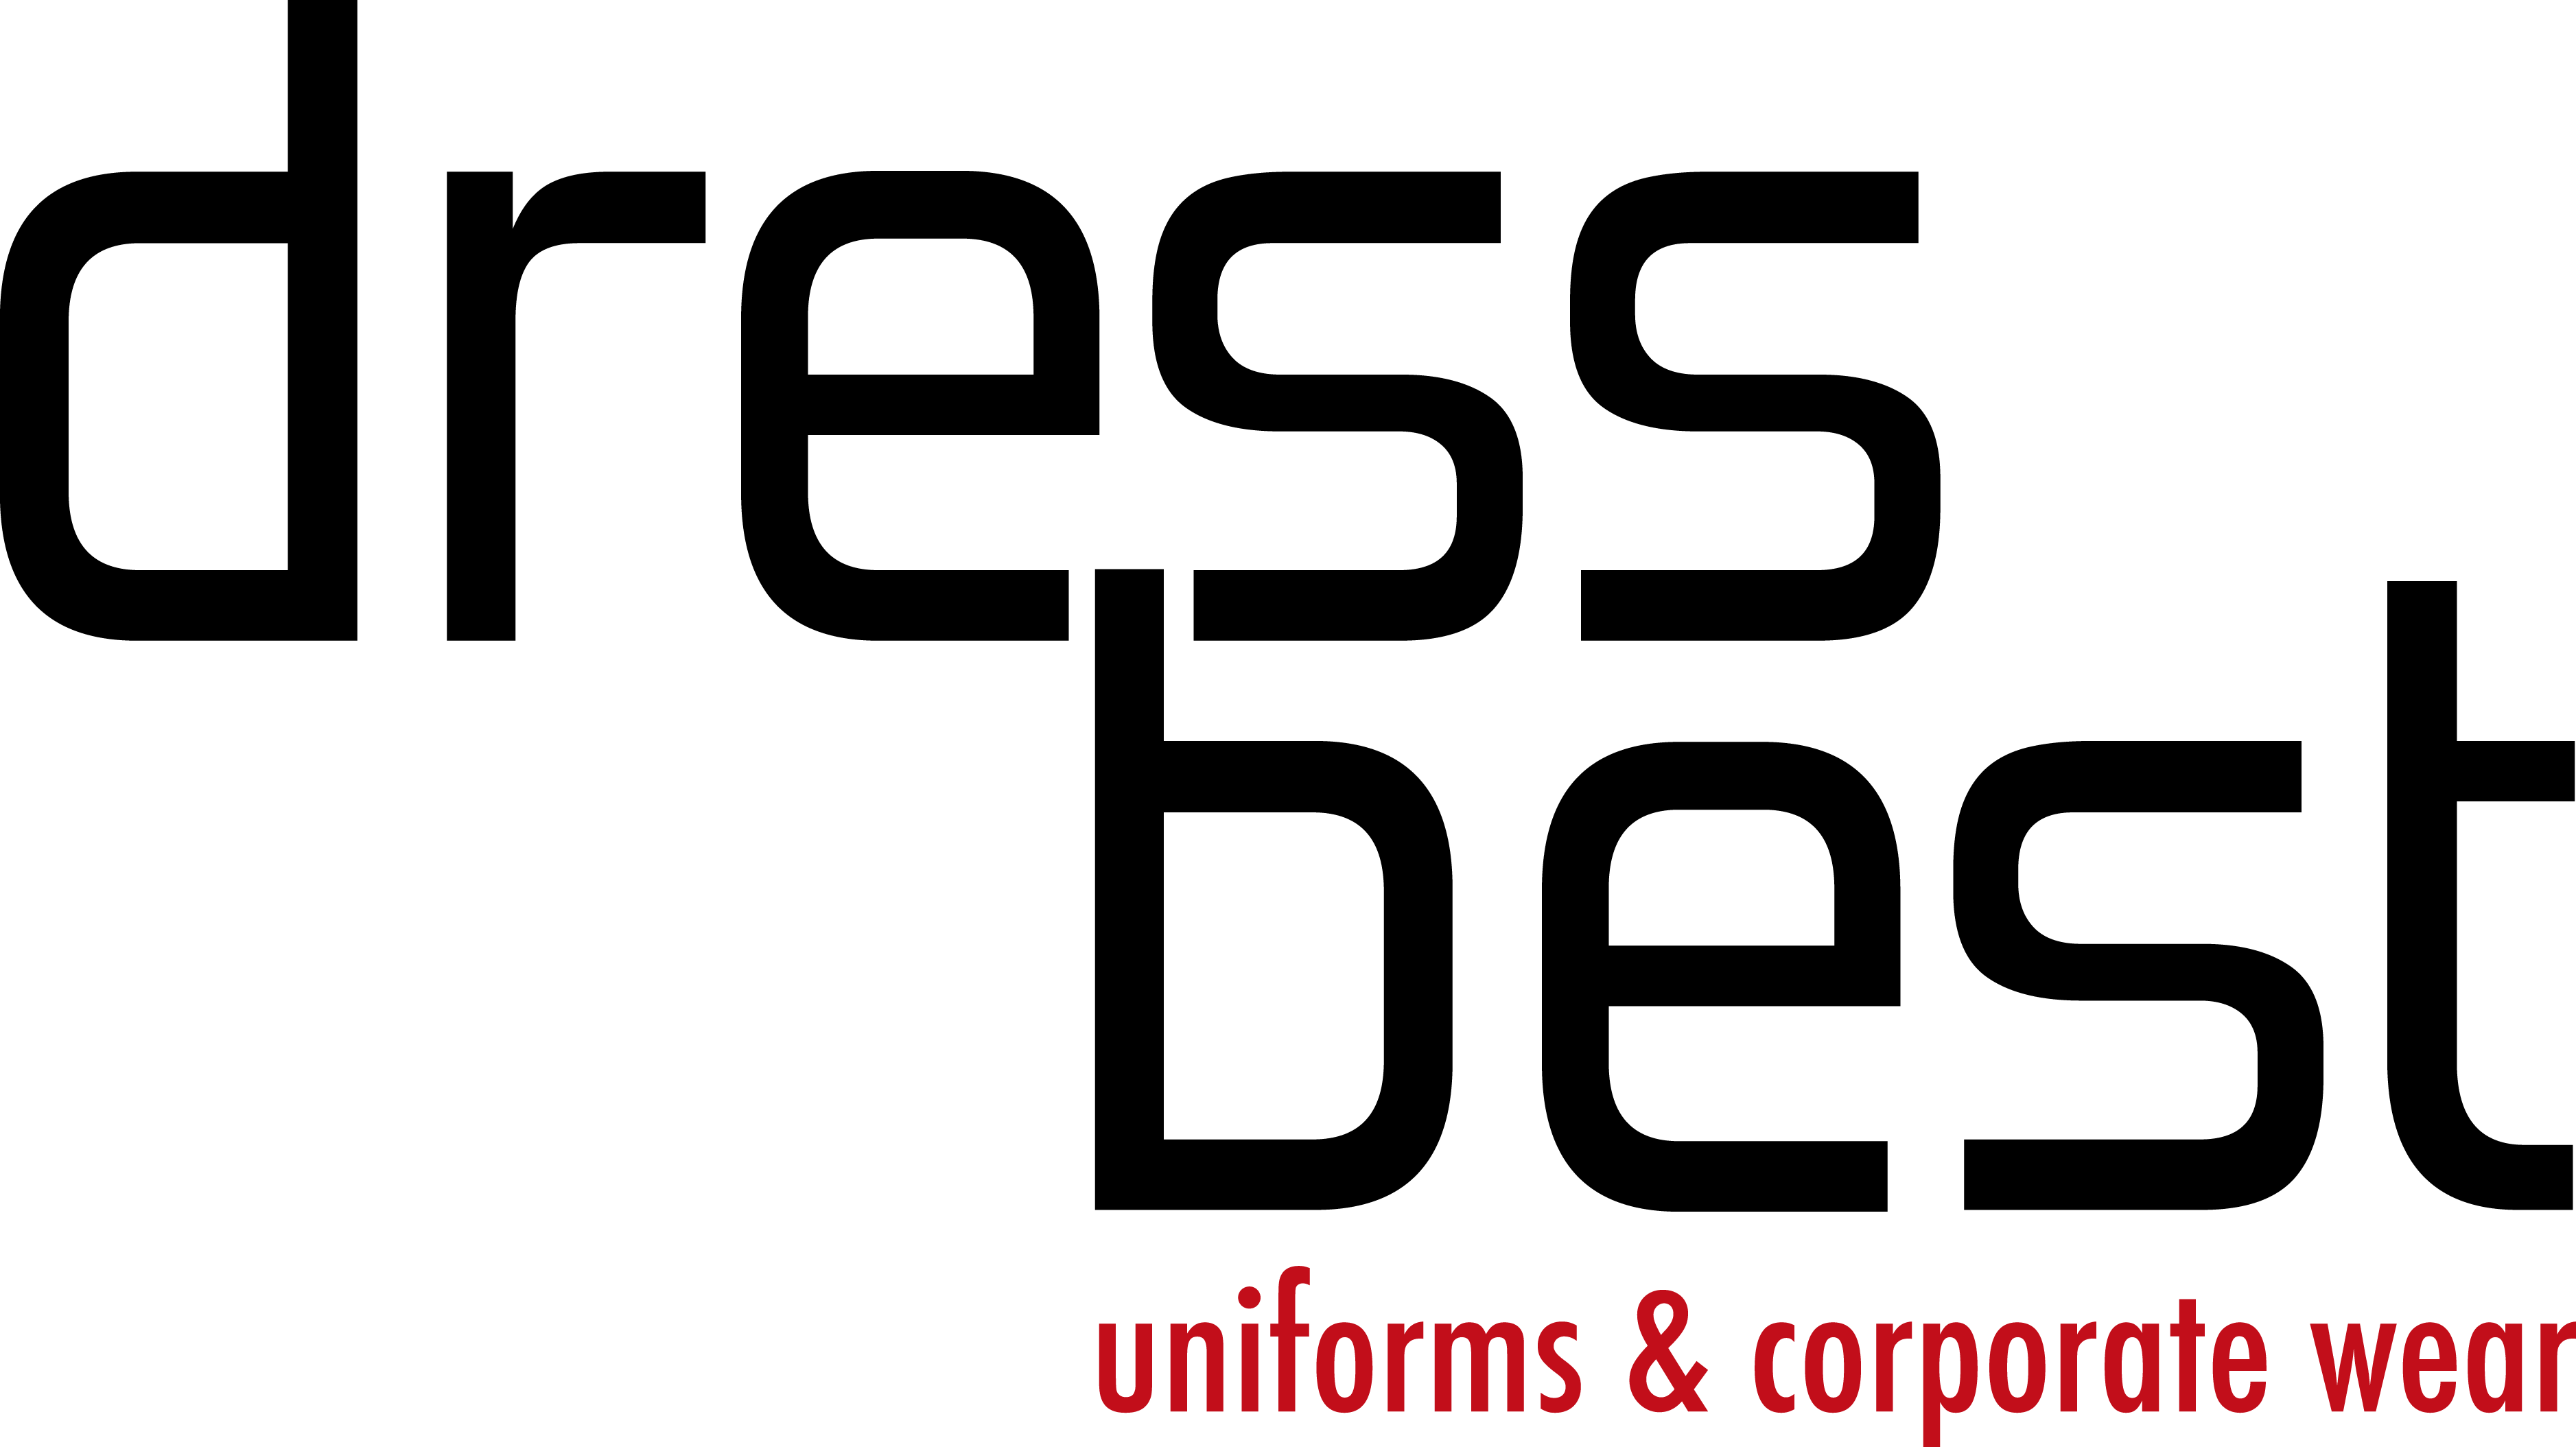 Dress Best Uniforms & Corporate Wear